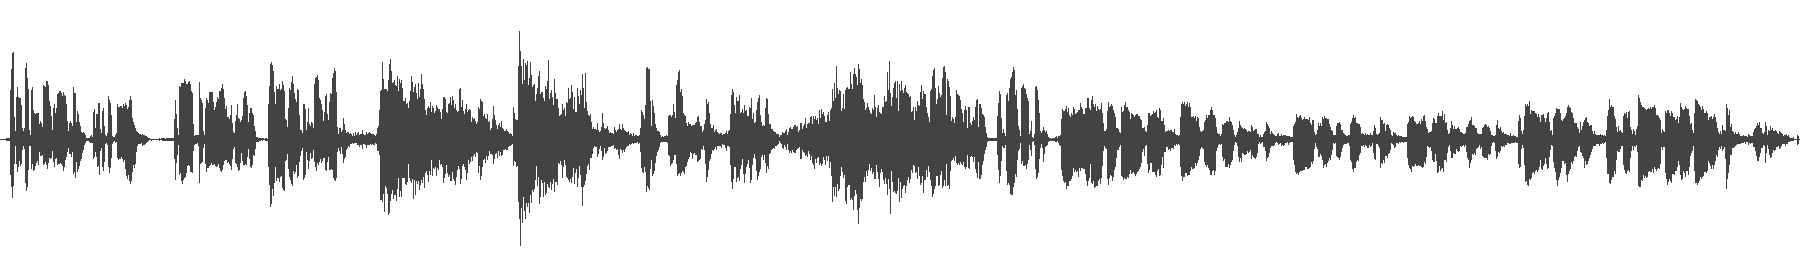 sound waves from a musical excerpt